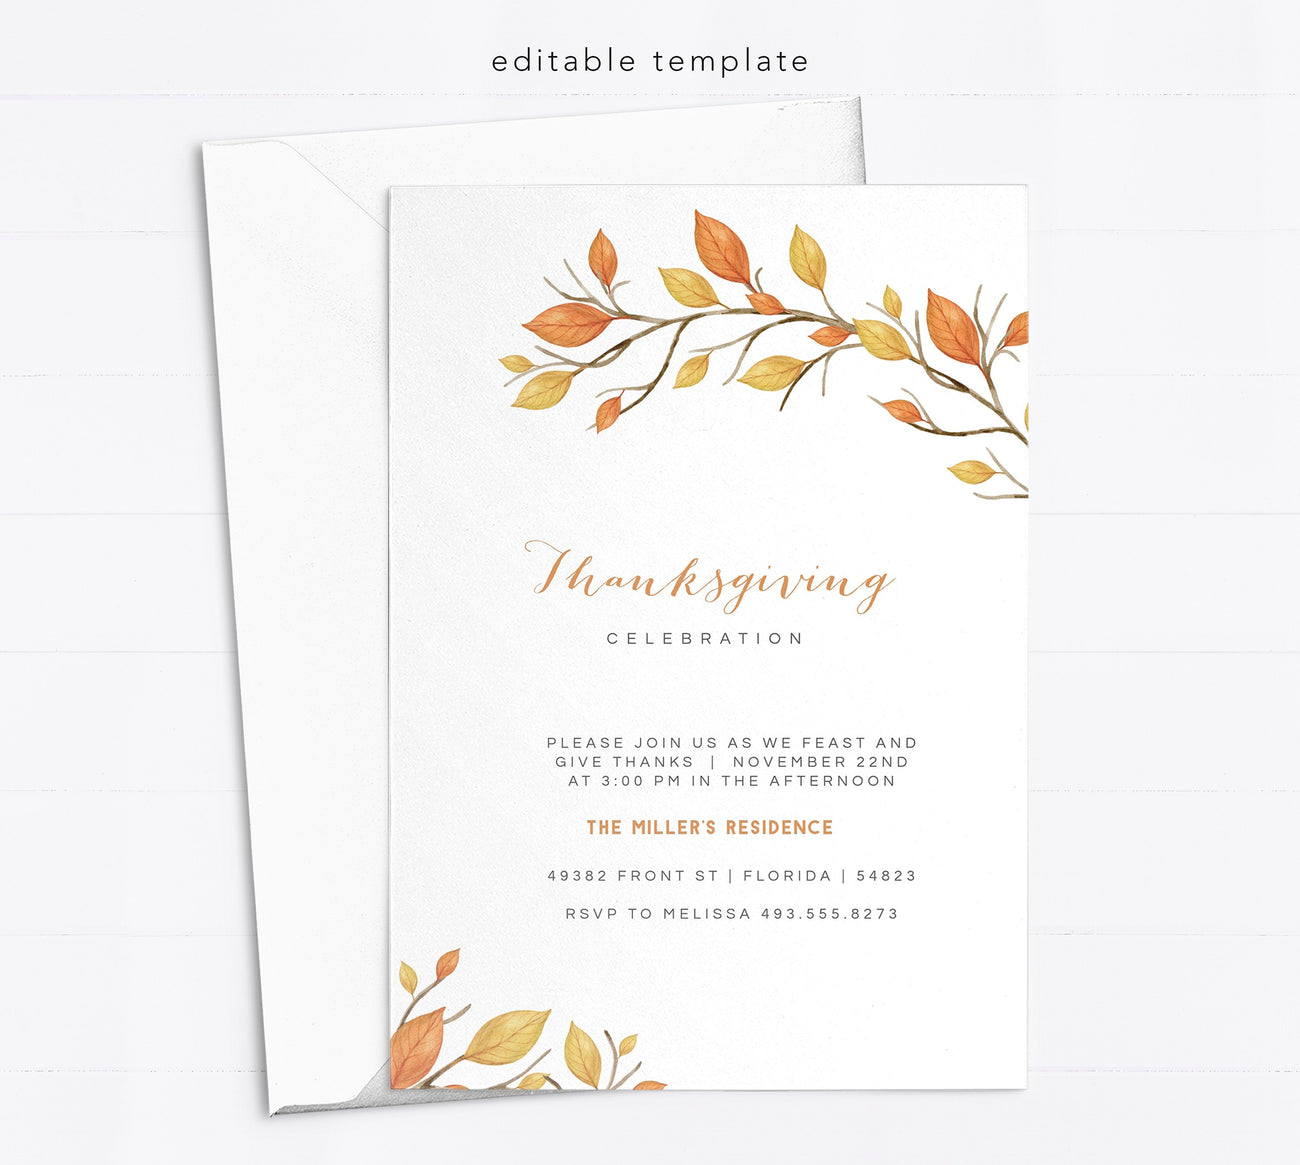 Editable Thanksgiving Card